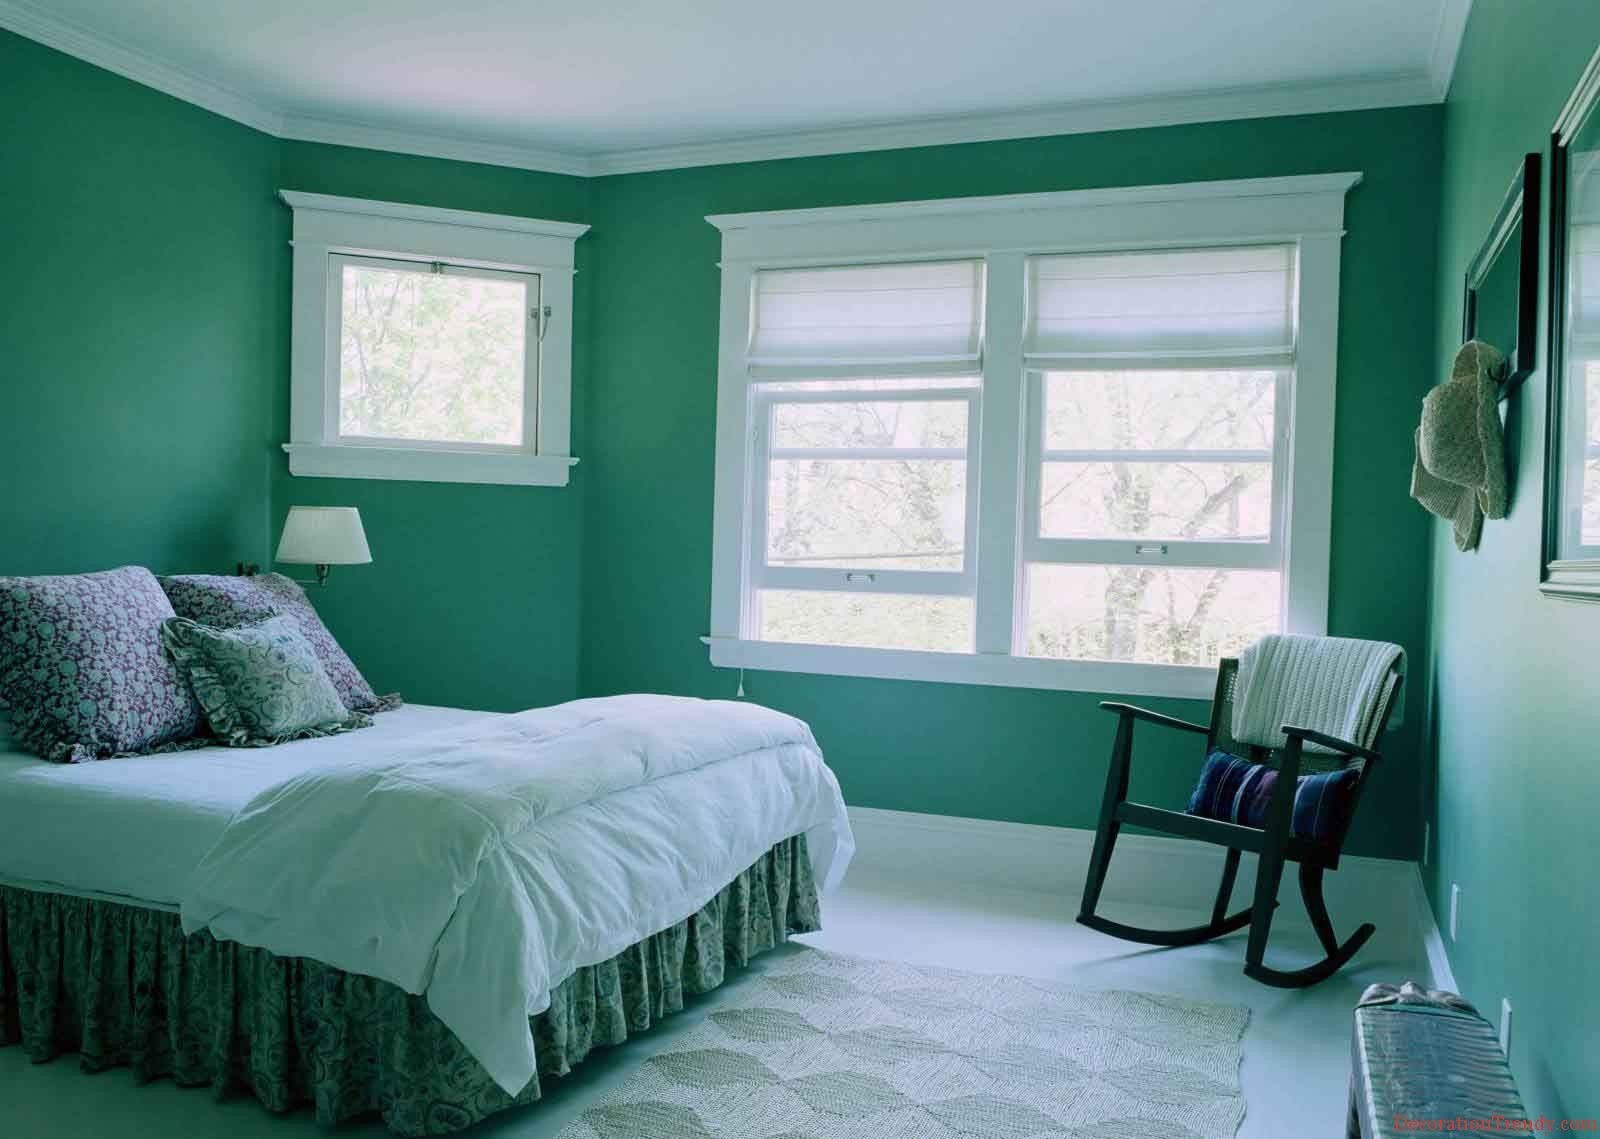 Feng Shui Farben Im Schlafzimmer The Amazing Persian Green Bedroom Color Scheme With White Ceiling And Viridian Bed - Astonishing Bedr… | Schlafzimmer Farben, Schlafzimmer Design, Schlafzimmer Wand